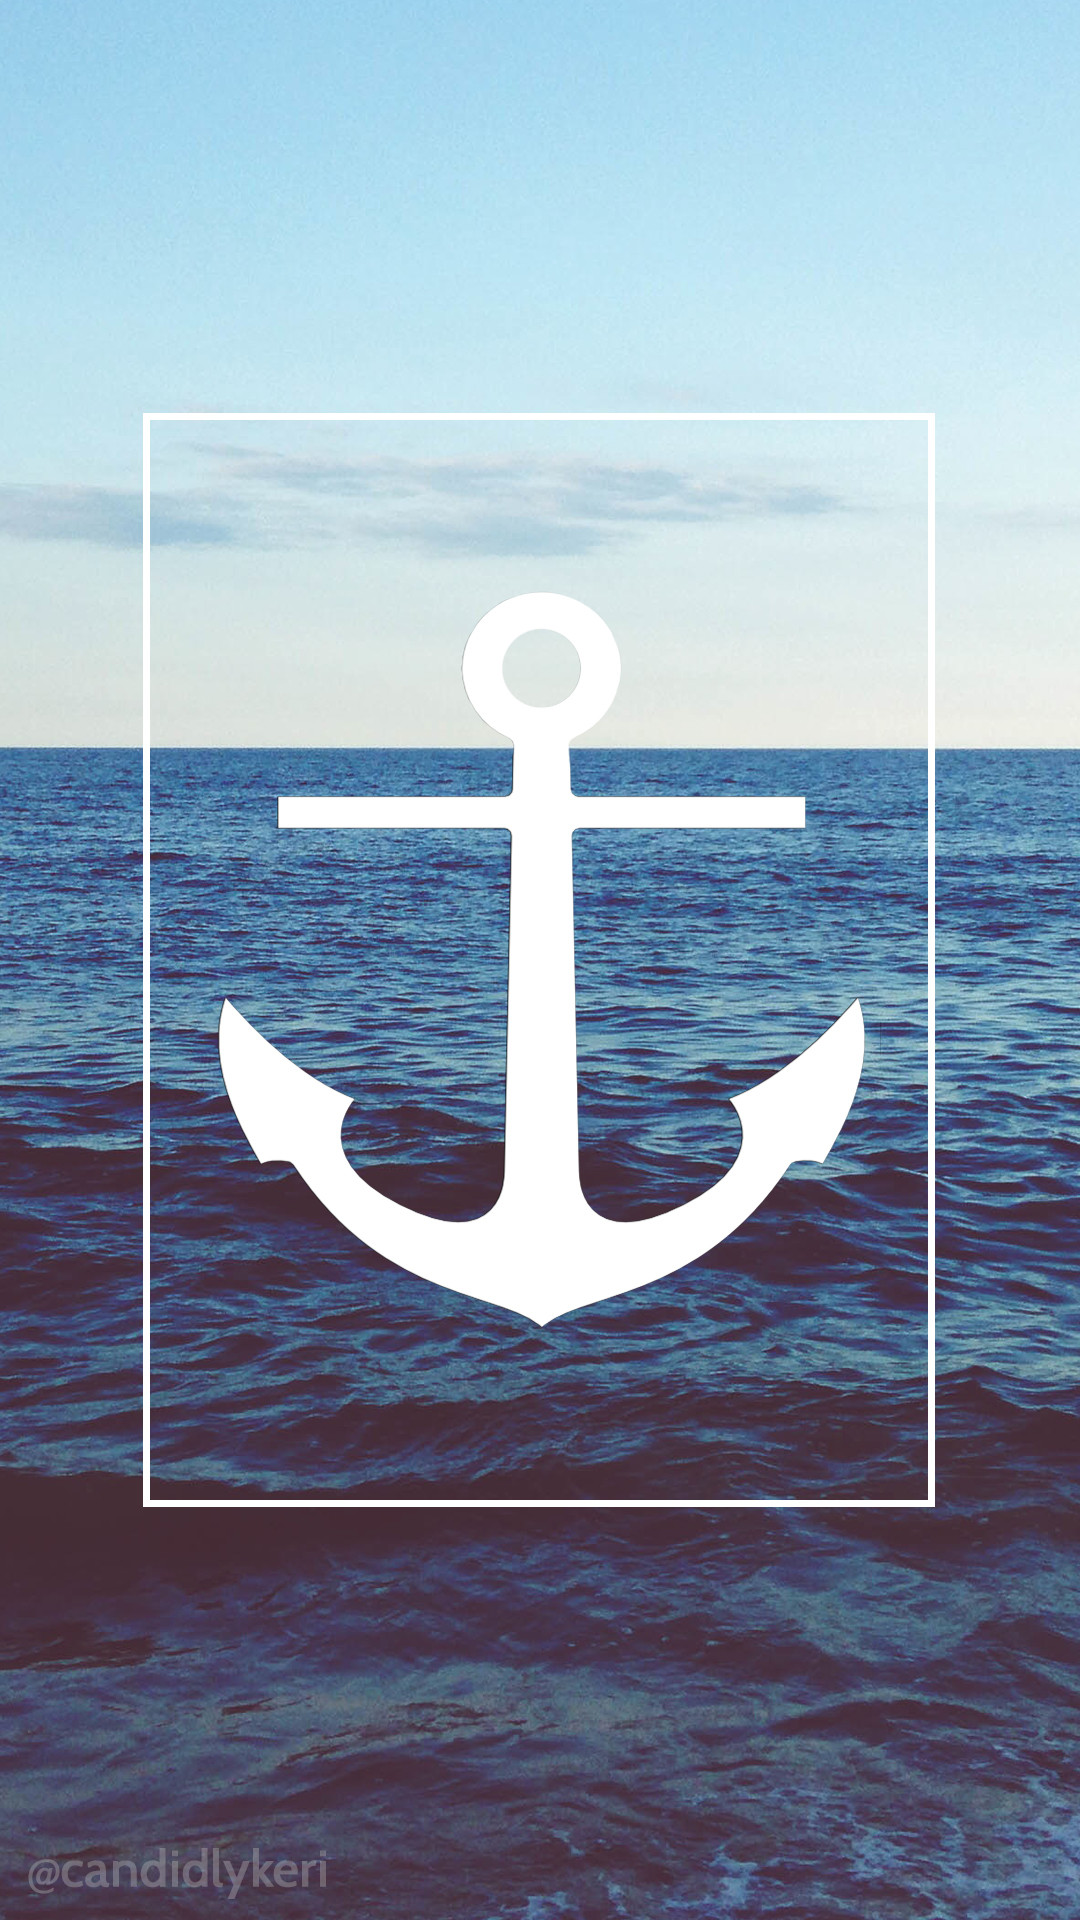 1080x1920 Sea Anchor Beach Nautical Wallpaper With Black And White Flowers Free Download For IPhone Android